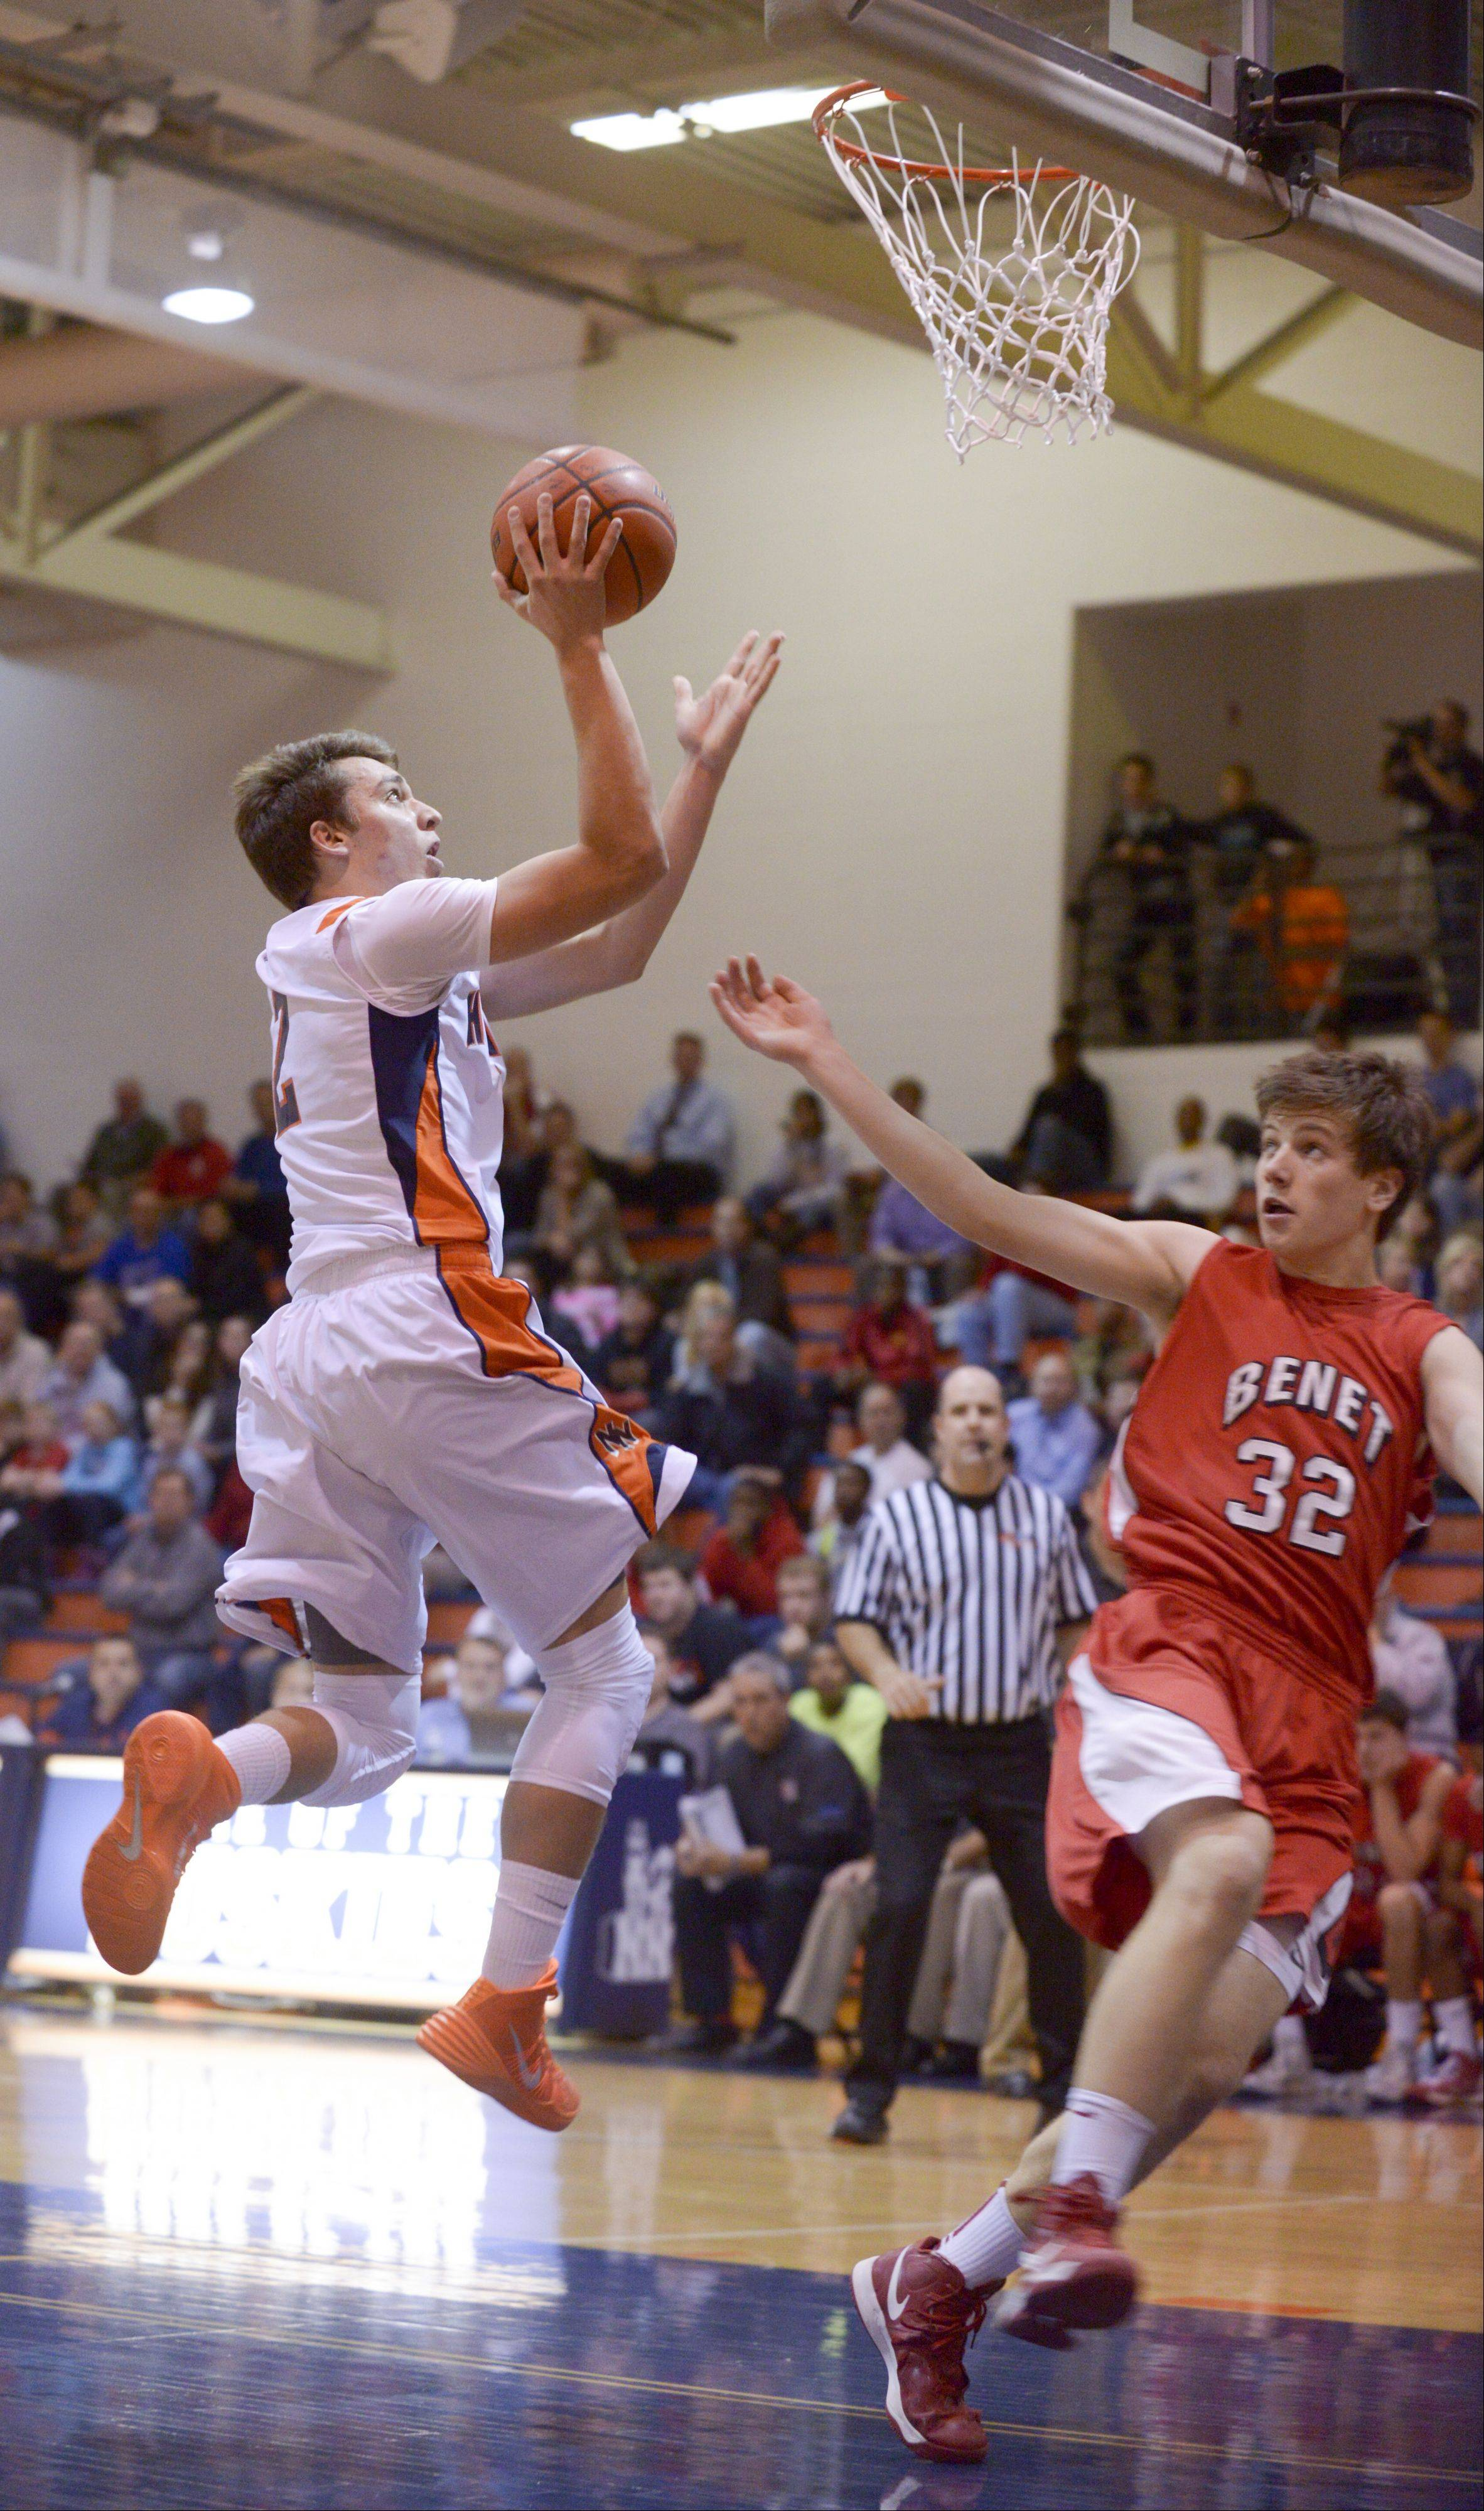 Naperville North's Anthony Rehayem takes a shot as Benet's Dan Sobolewski looks on, during in boys basketball in Naperville Sunday.